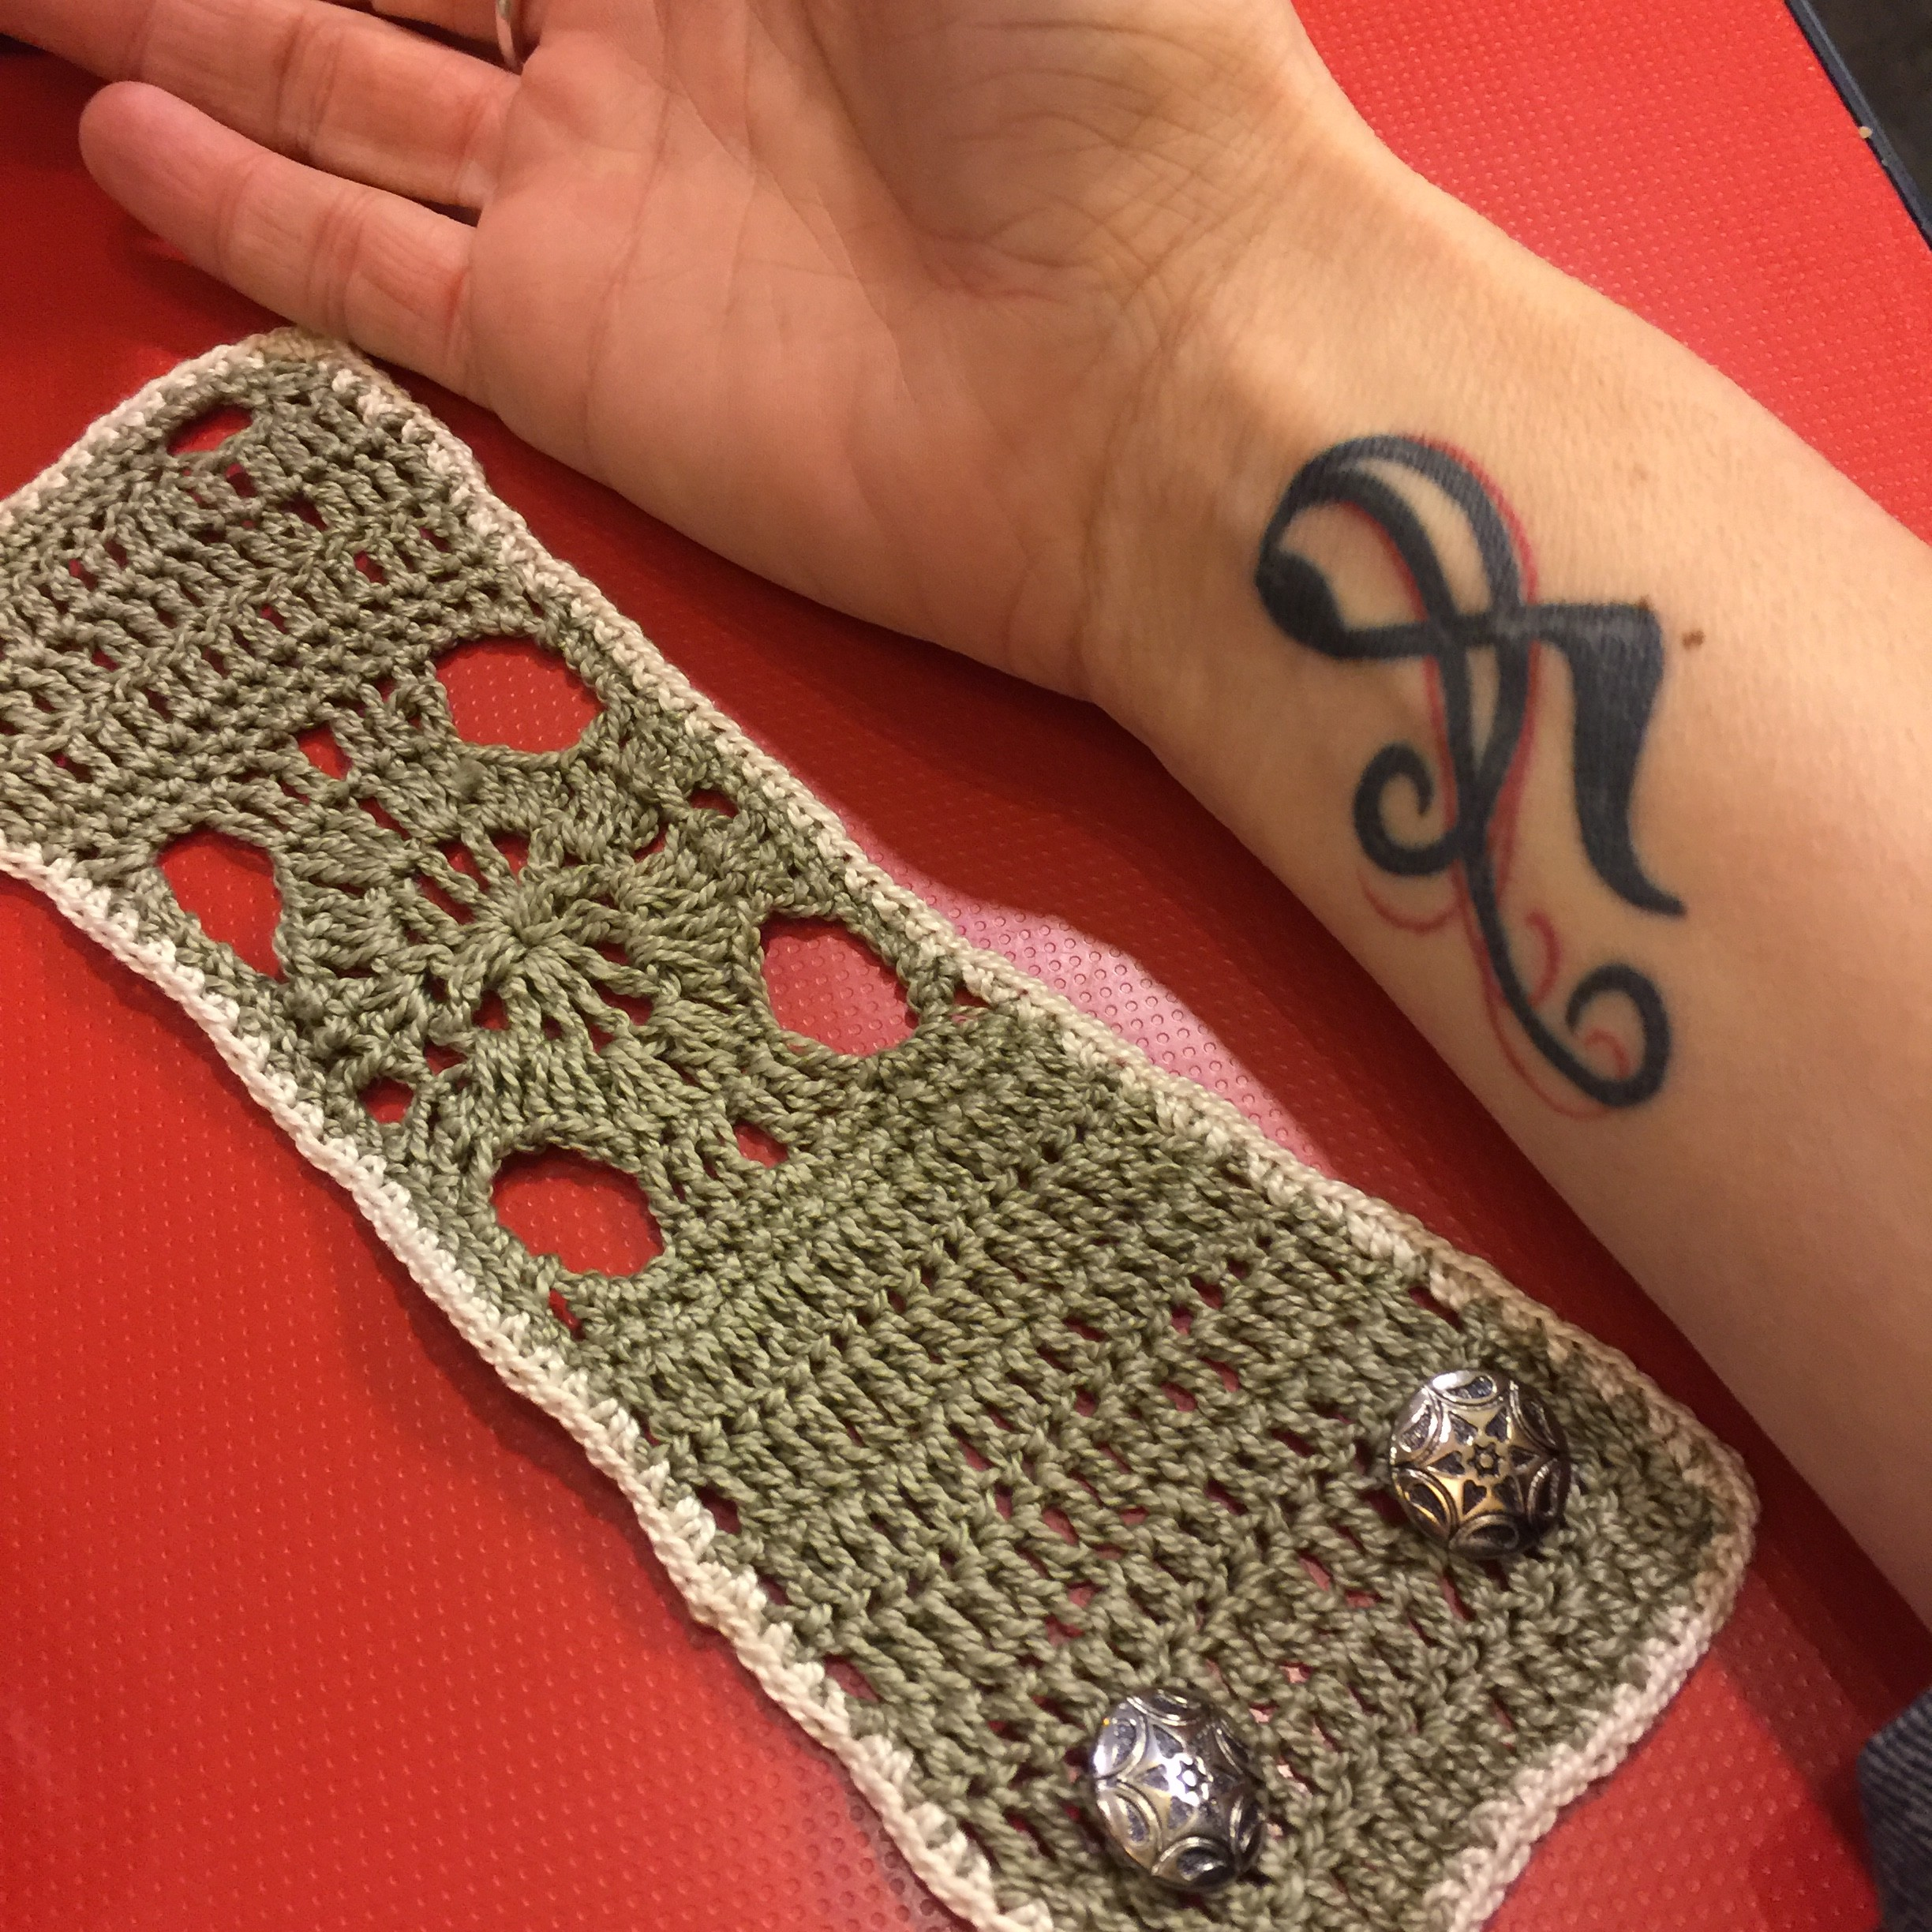 Wrist tattoo cover and crocheted earrings | marni made it